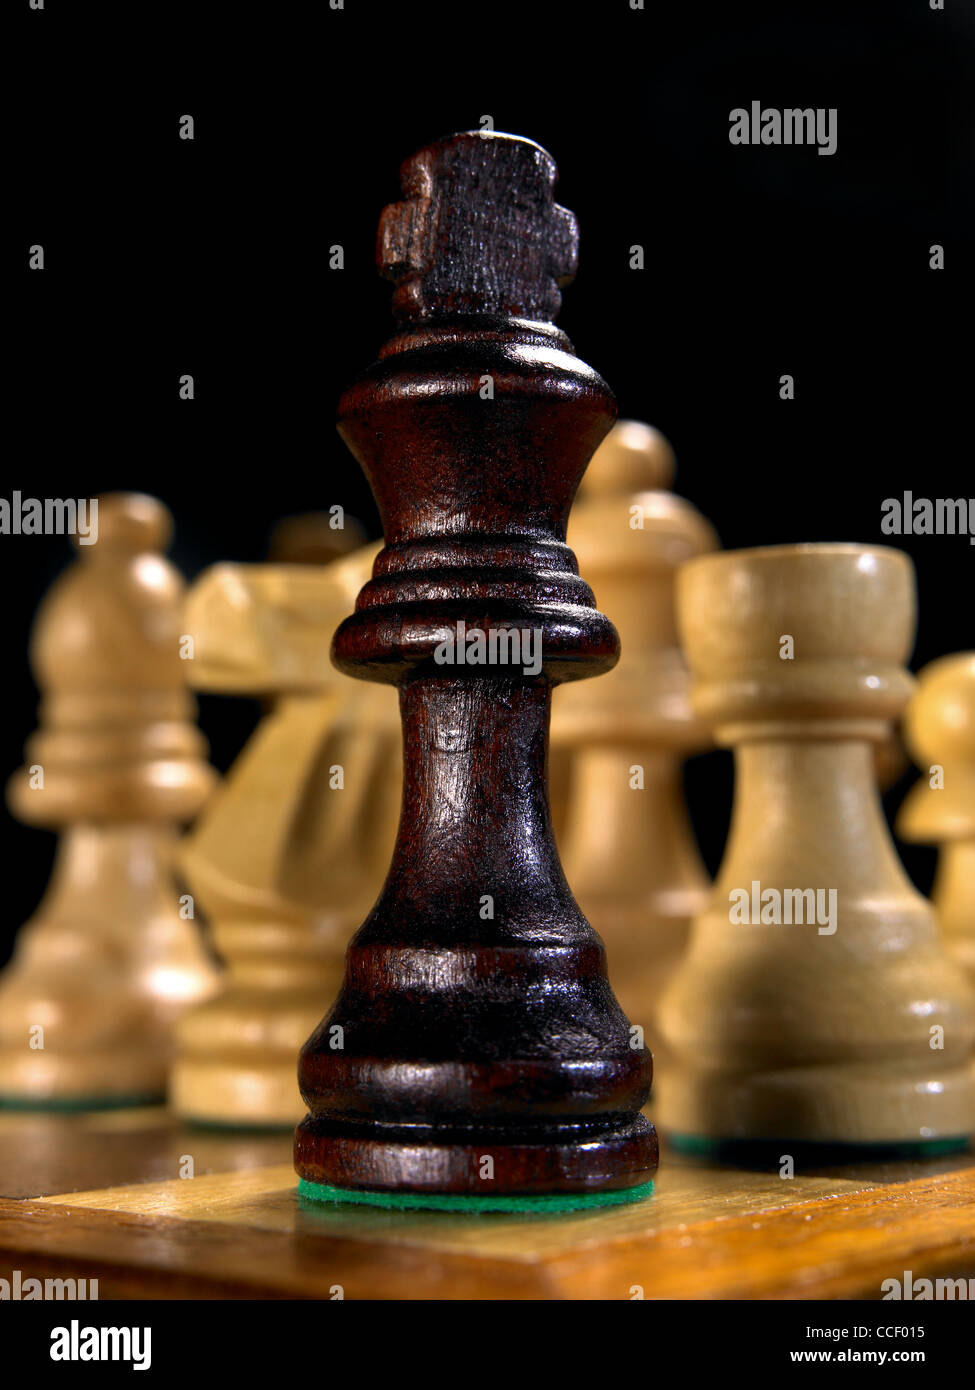 The king chess piece on a chessboard - Stock Image